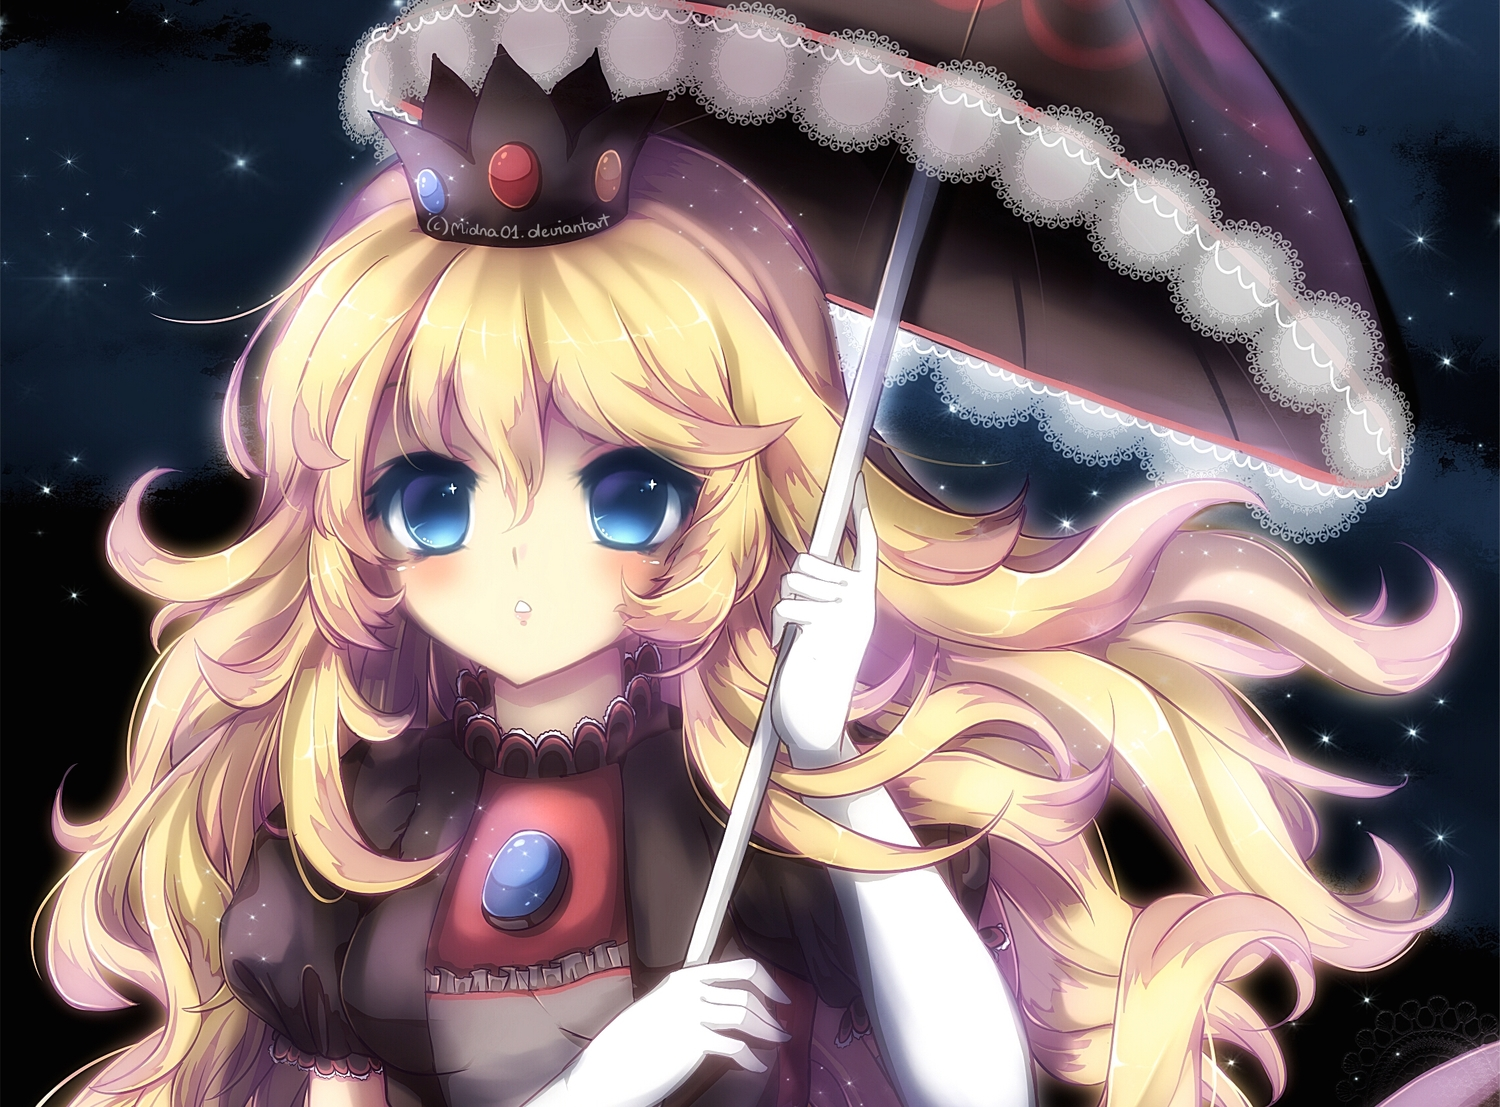 blonde_hair blue_eyes close cropped crown elbow_gloves gloves gothic midna01 polychromatic princess_peach stars super_mario umbrella watermark